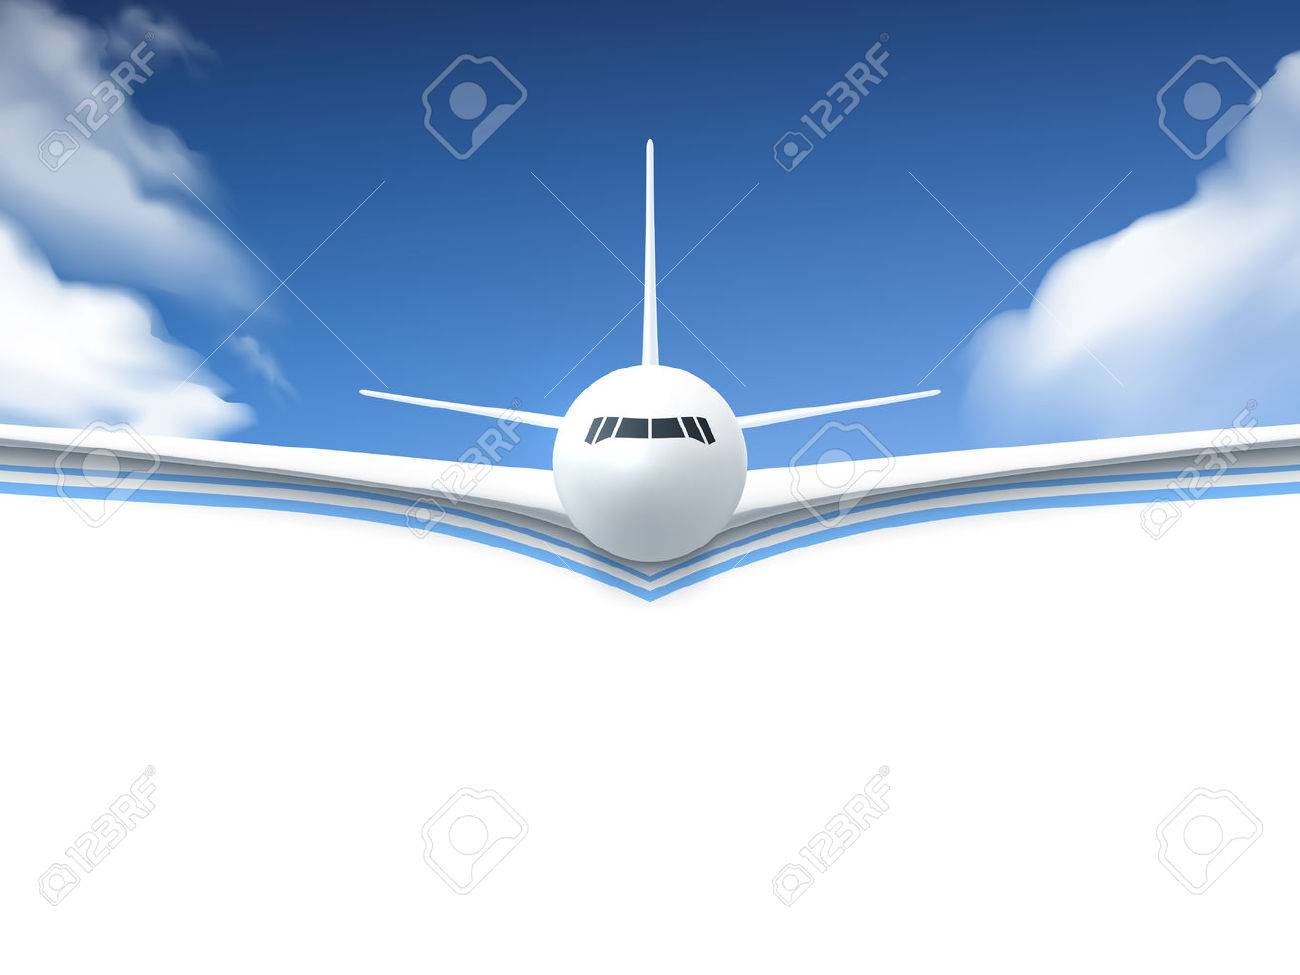 Realistic poster white Airplane flying in the sky with white bottom abstract background vector illustration Stock Vector - 55220583